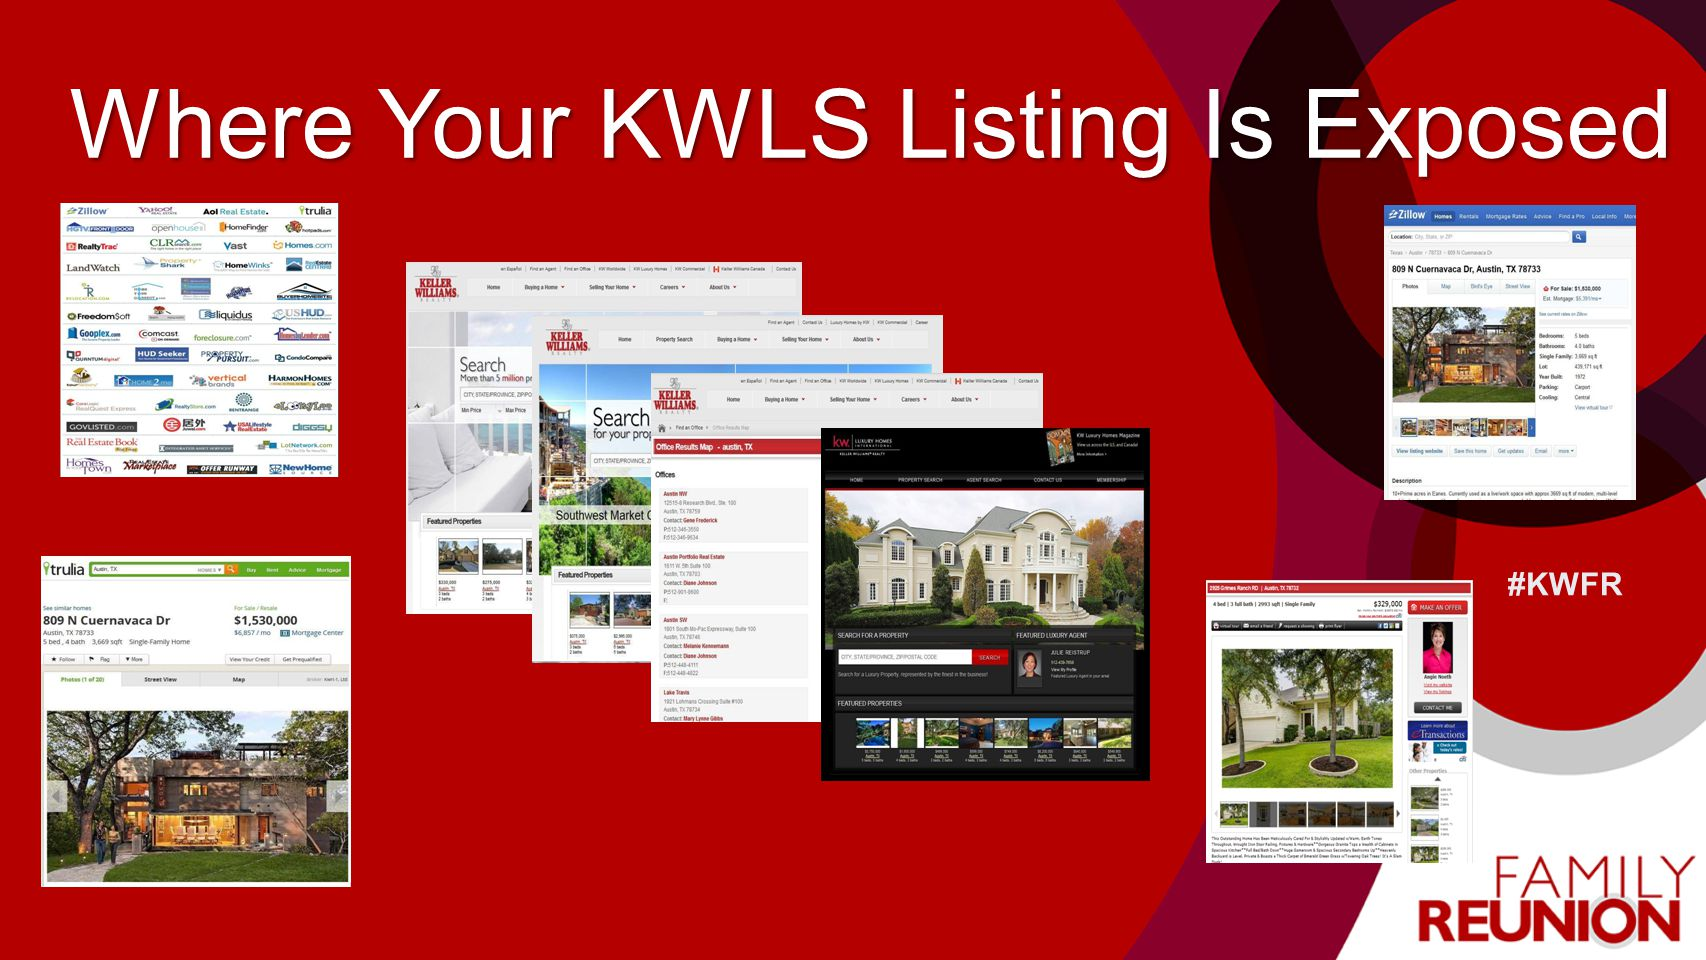 Where Your KWLS Listing Is Exposed